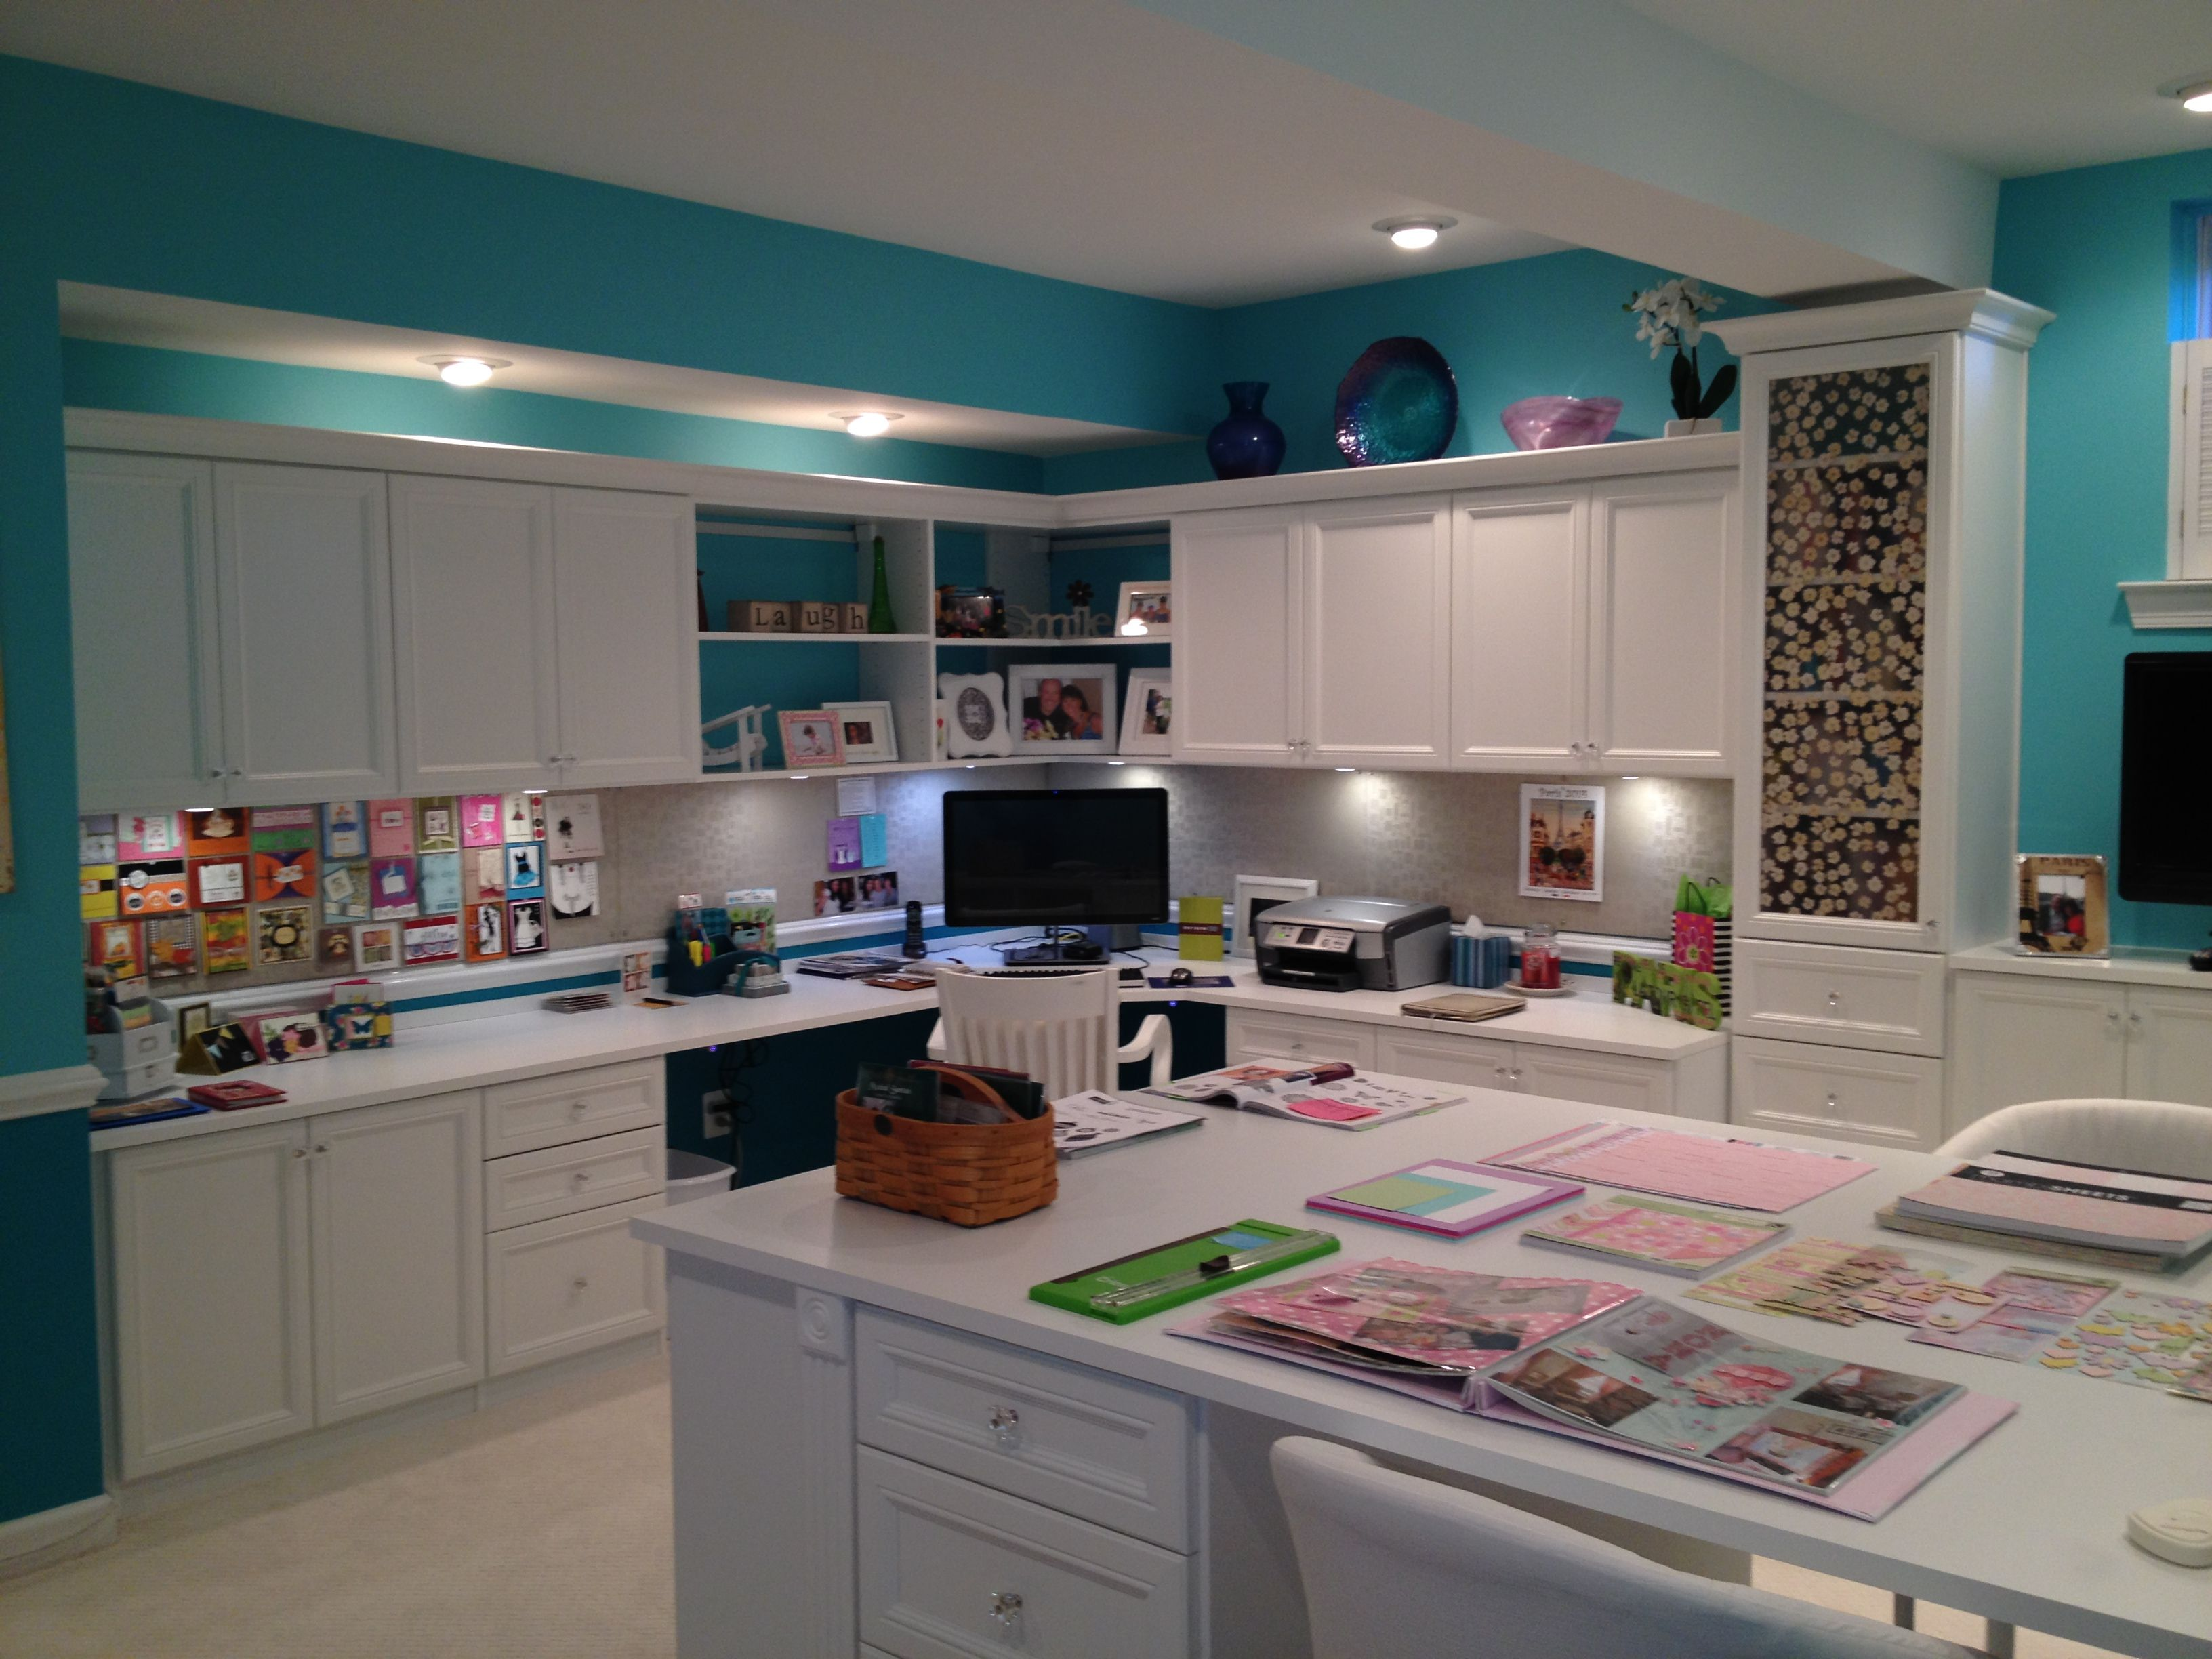 Home Craft Room: Home Office And Craft Room